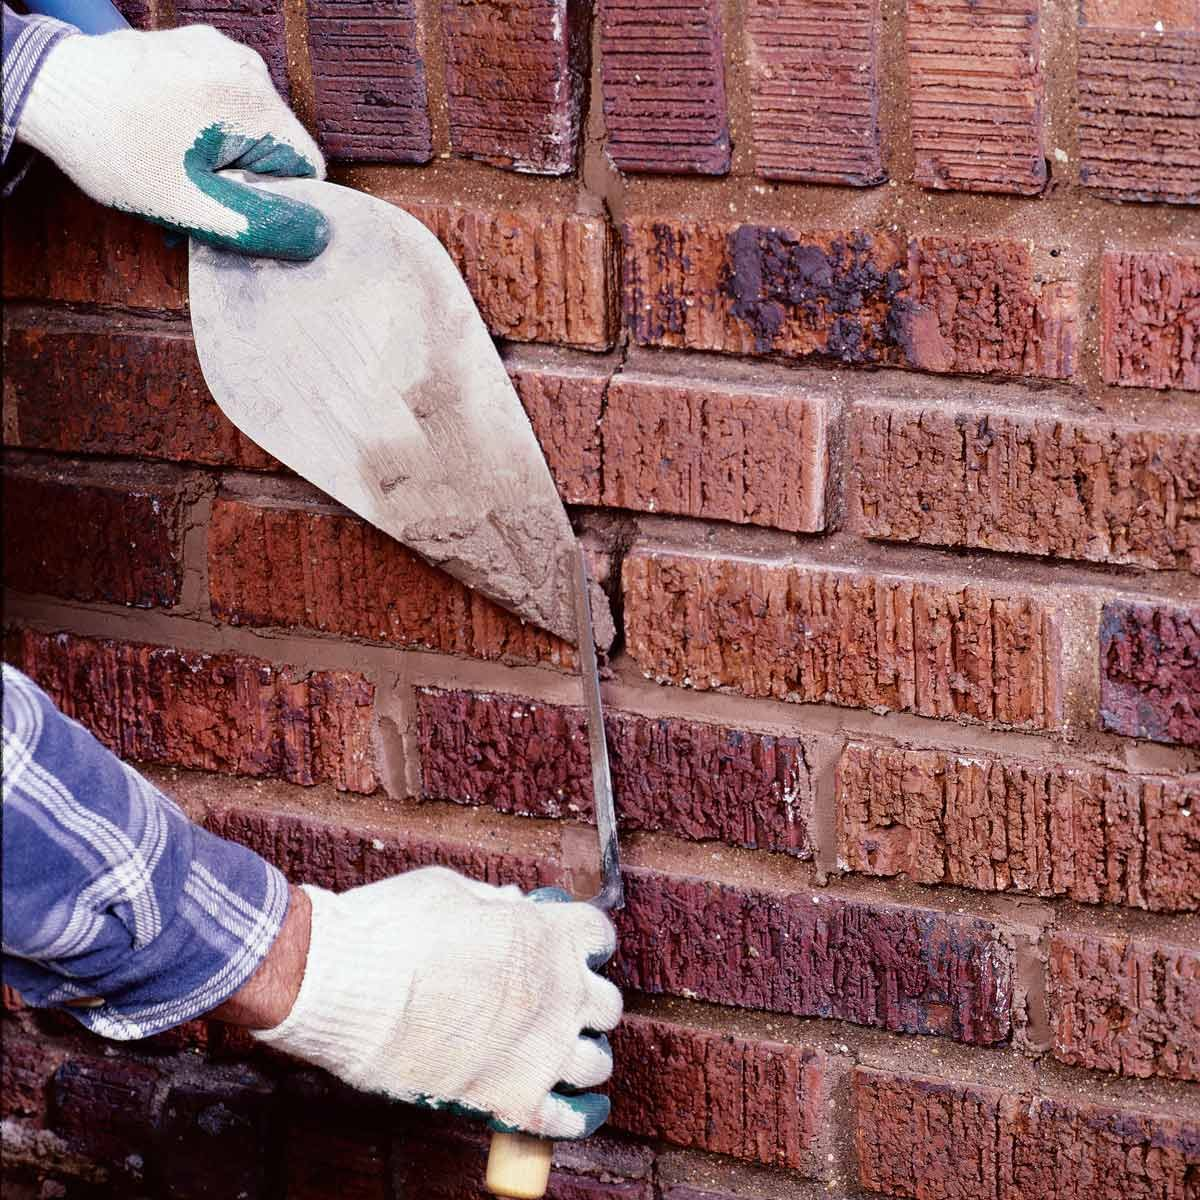 repair brick mortar joints